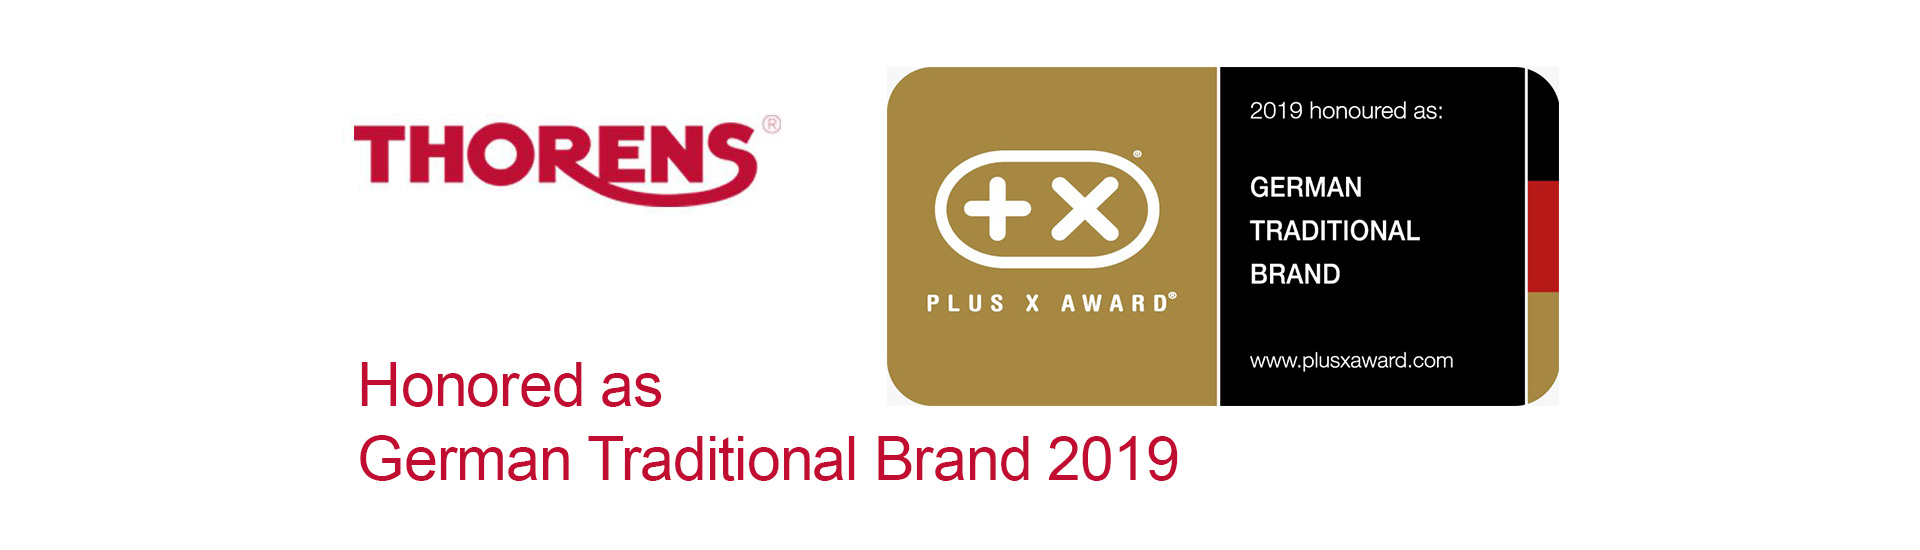 PLUS X AWARD - Thorens honored as GERMAN TRADITIONAL BRAND 2019